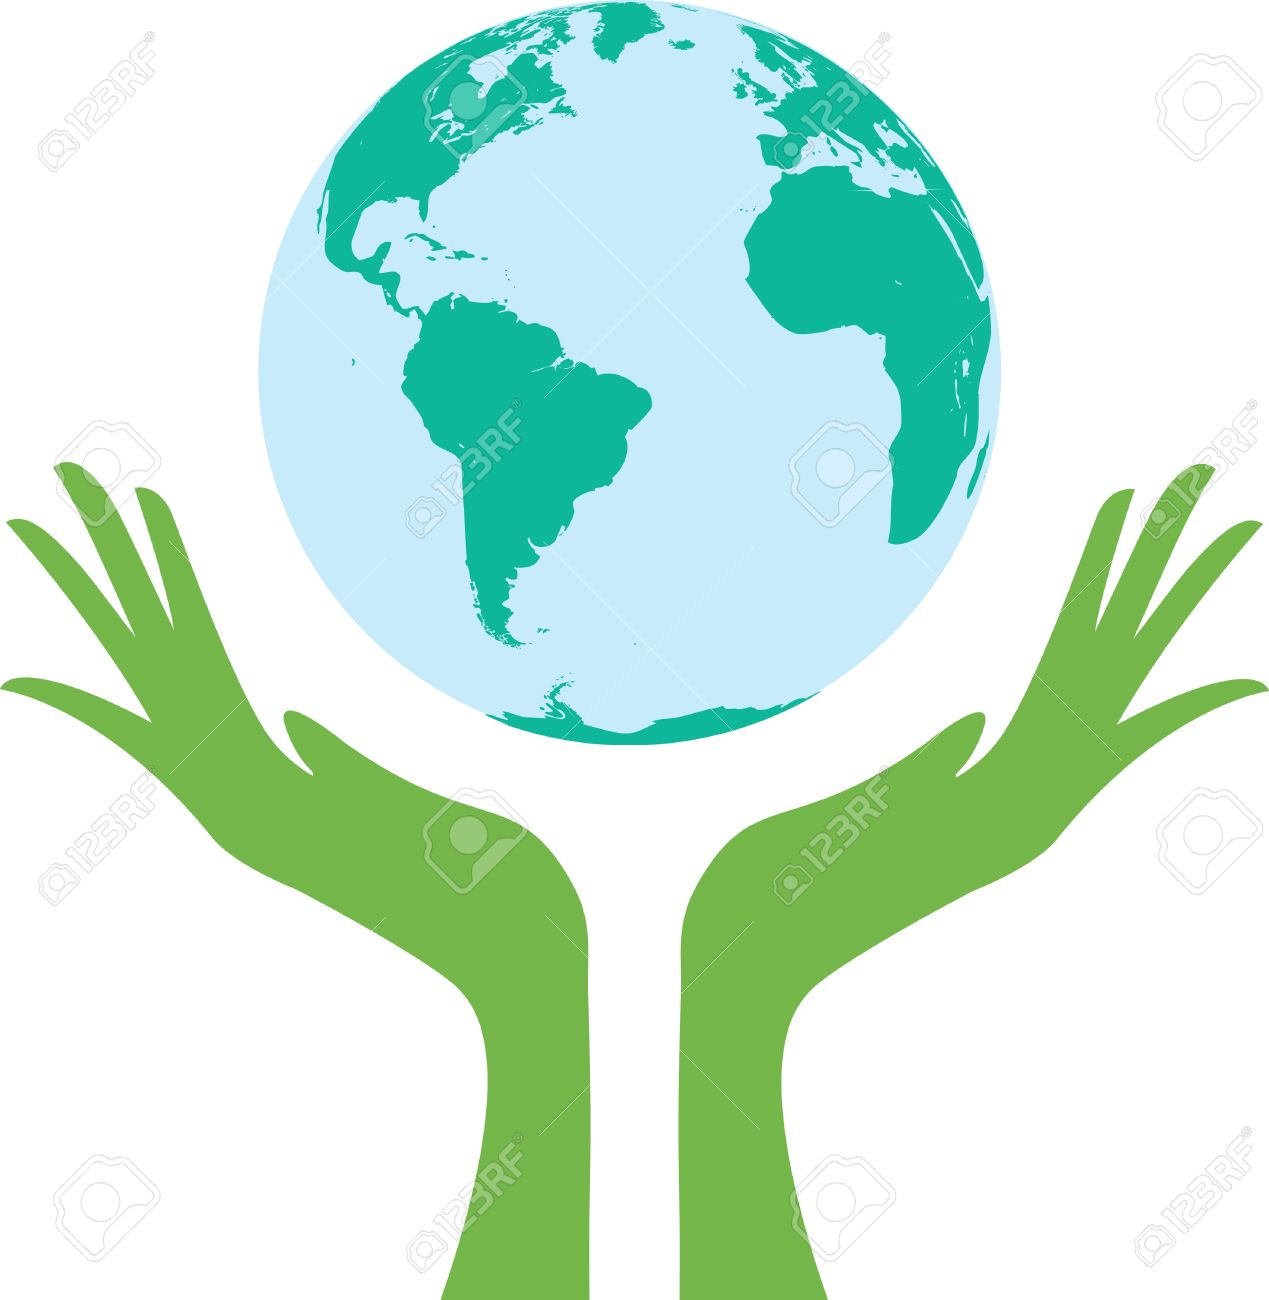 Earth in hand clipart.